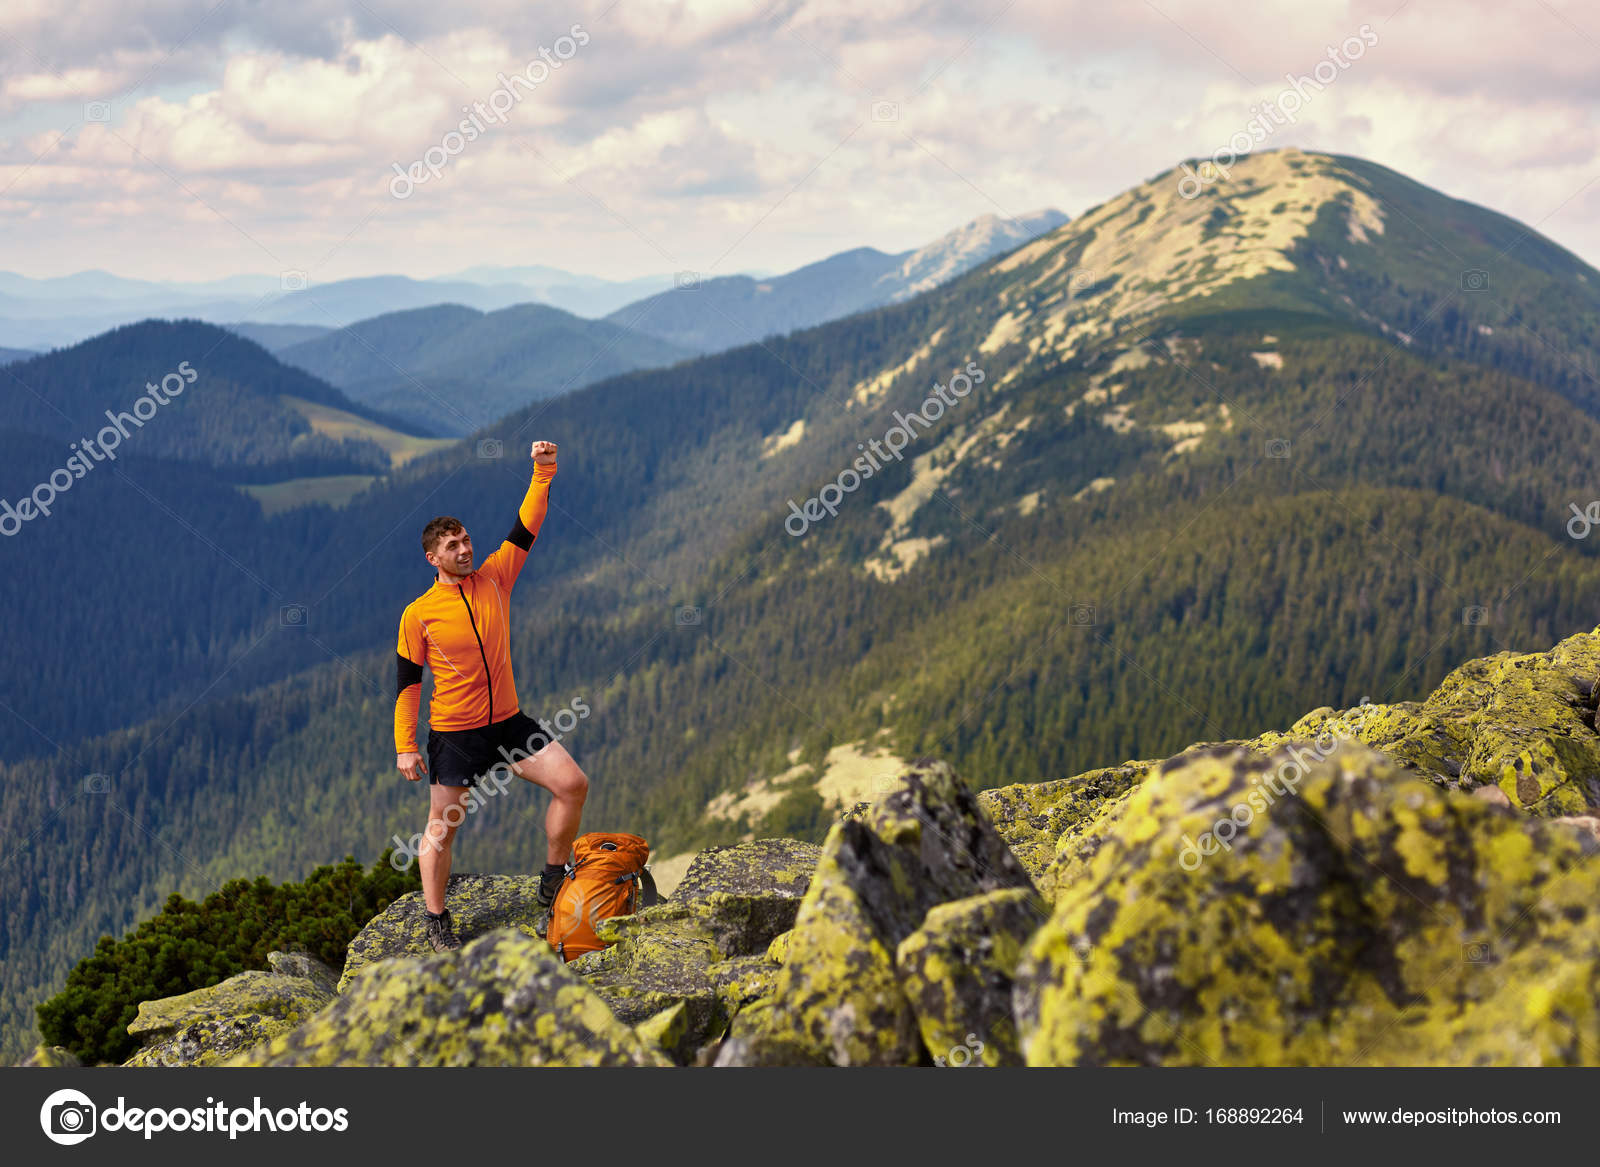 e3aeacd4853b Man traveler with backpack hiking Travel Lifestyle concept adventure active summer  vacations outdoor rocky mountains on background — Photo by aleksey rezin